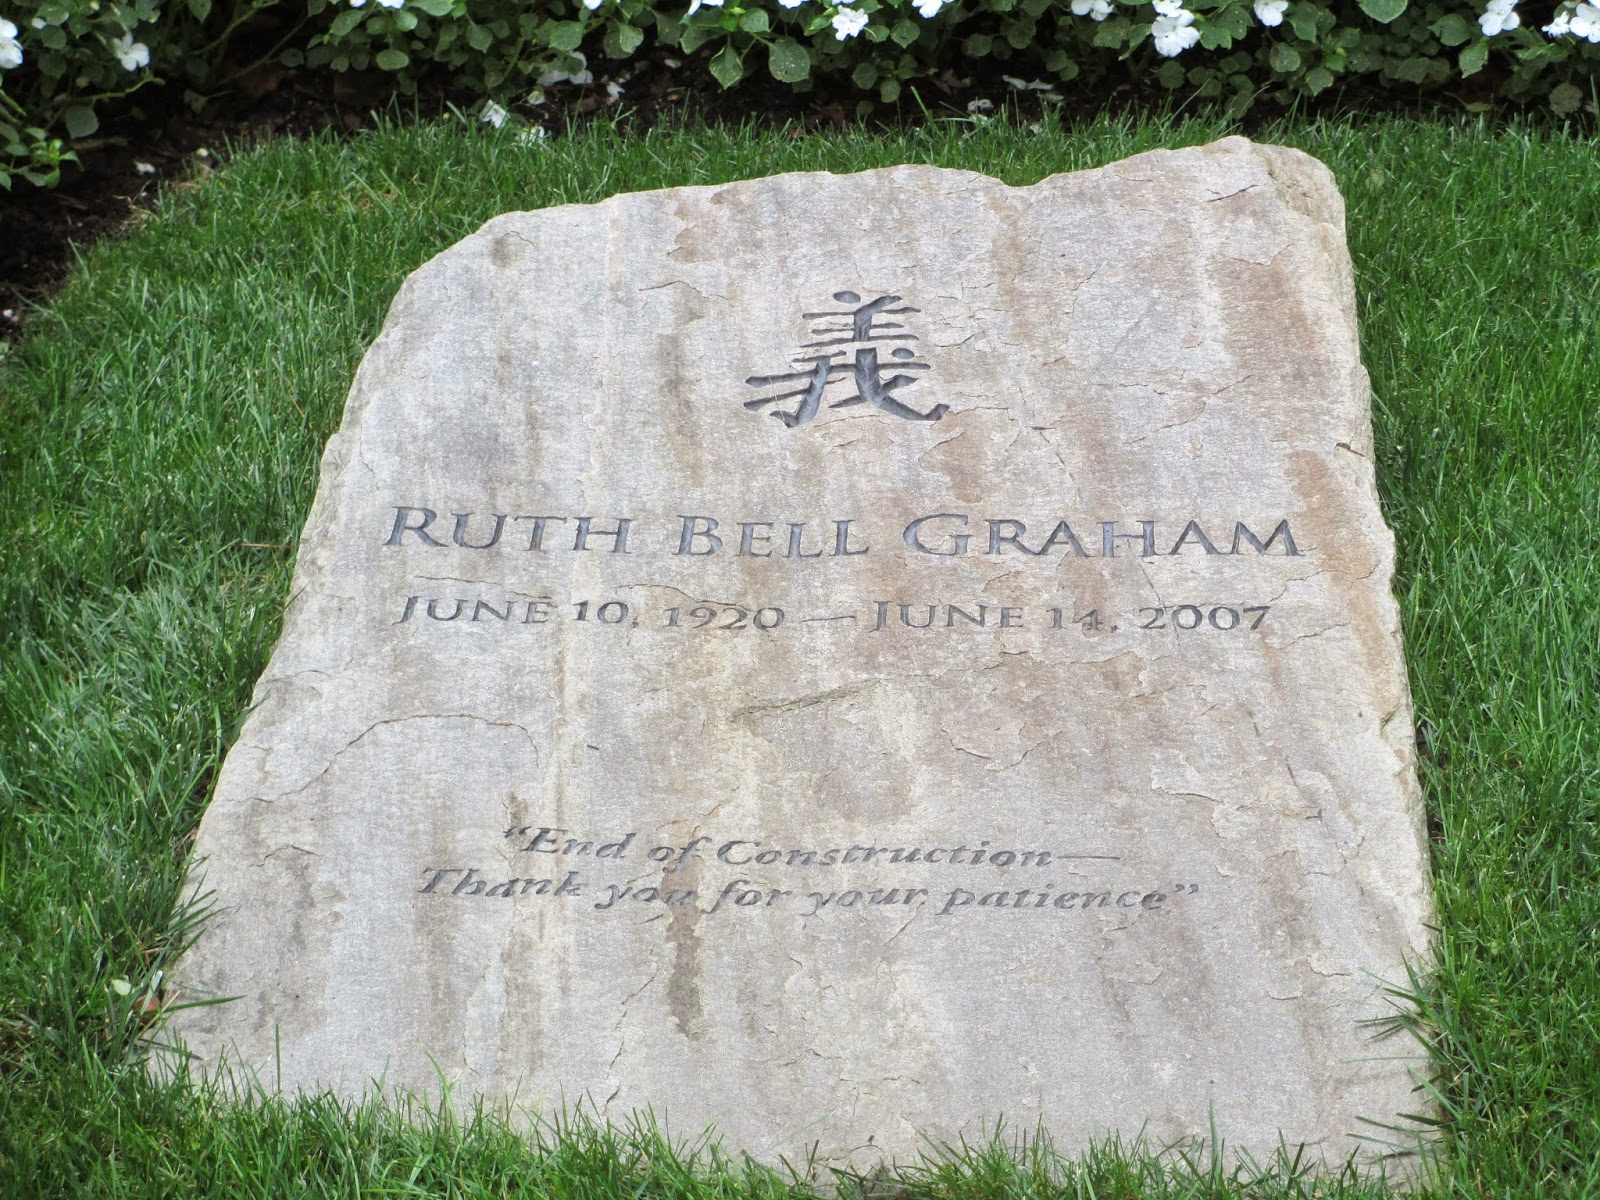 http://commons.wikimedia.org/wiki/File:Gravestone_of_Ruth_Bell_Graham_IMG_4206.JPG#mediaviewer/File:Gravestone_of_Ruth_Bell_Graham_IMG_4206.JPG